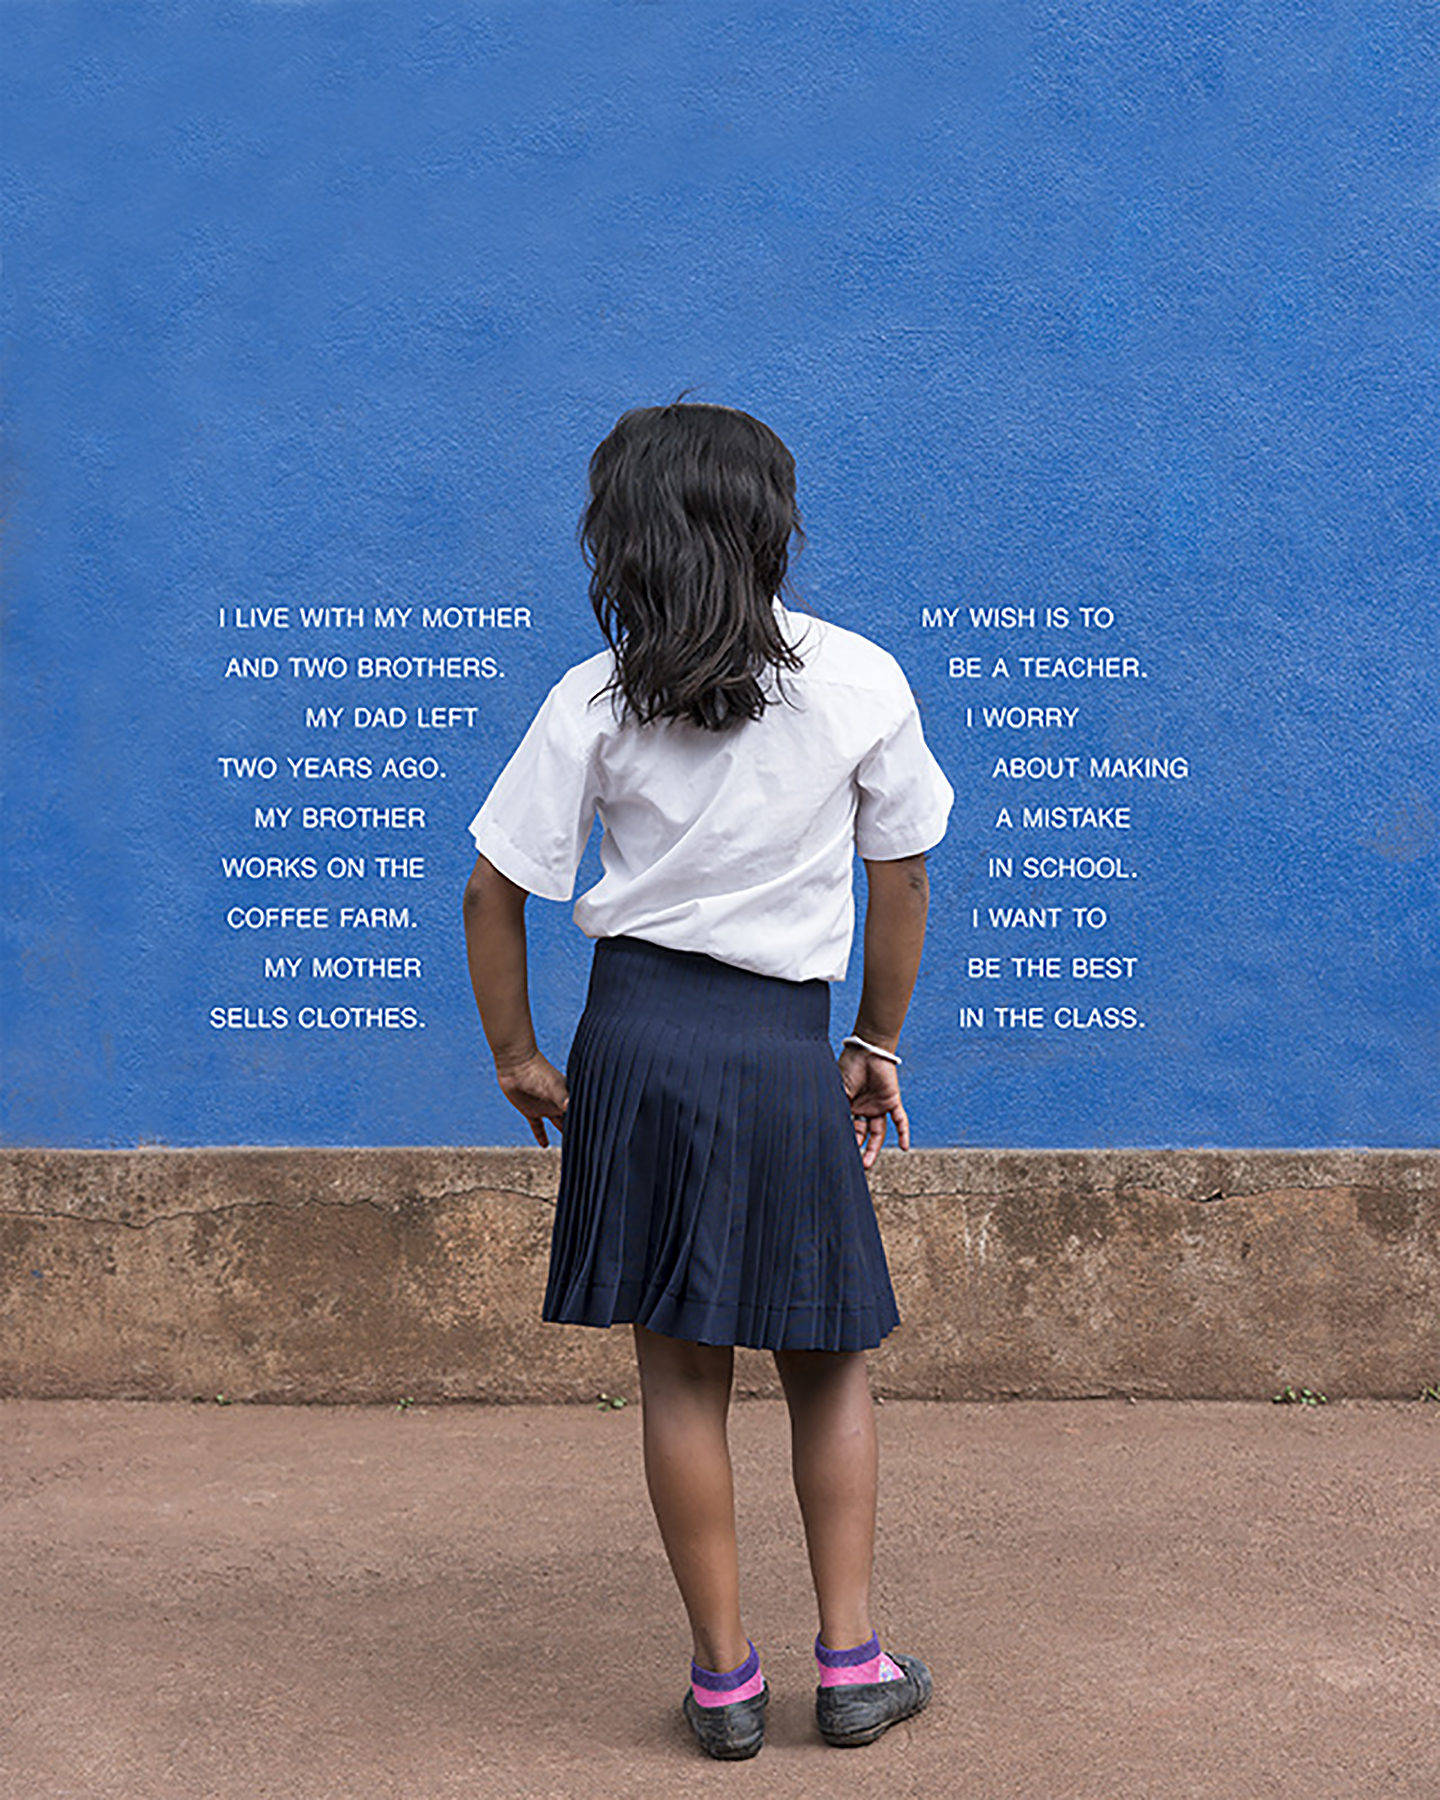 Fourth Grade - The Class (Nicaragua: Public School), 25 x 20 inches / 63.5 x 50.8 cm, archival pigment print, edition 1/5, 2016